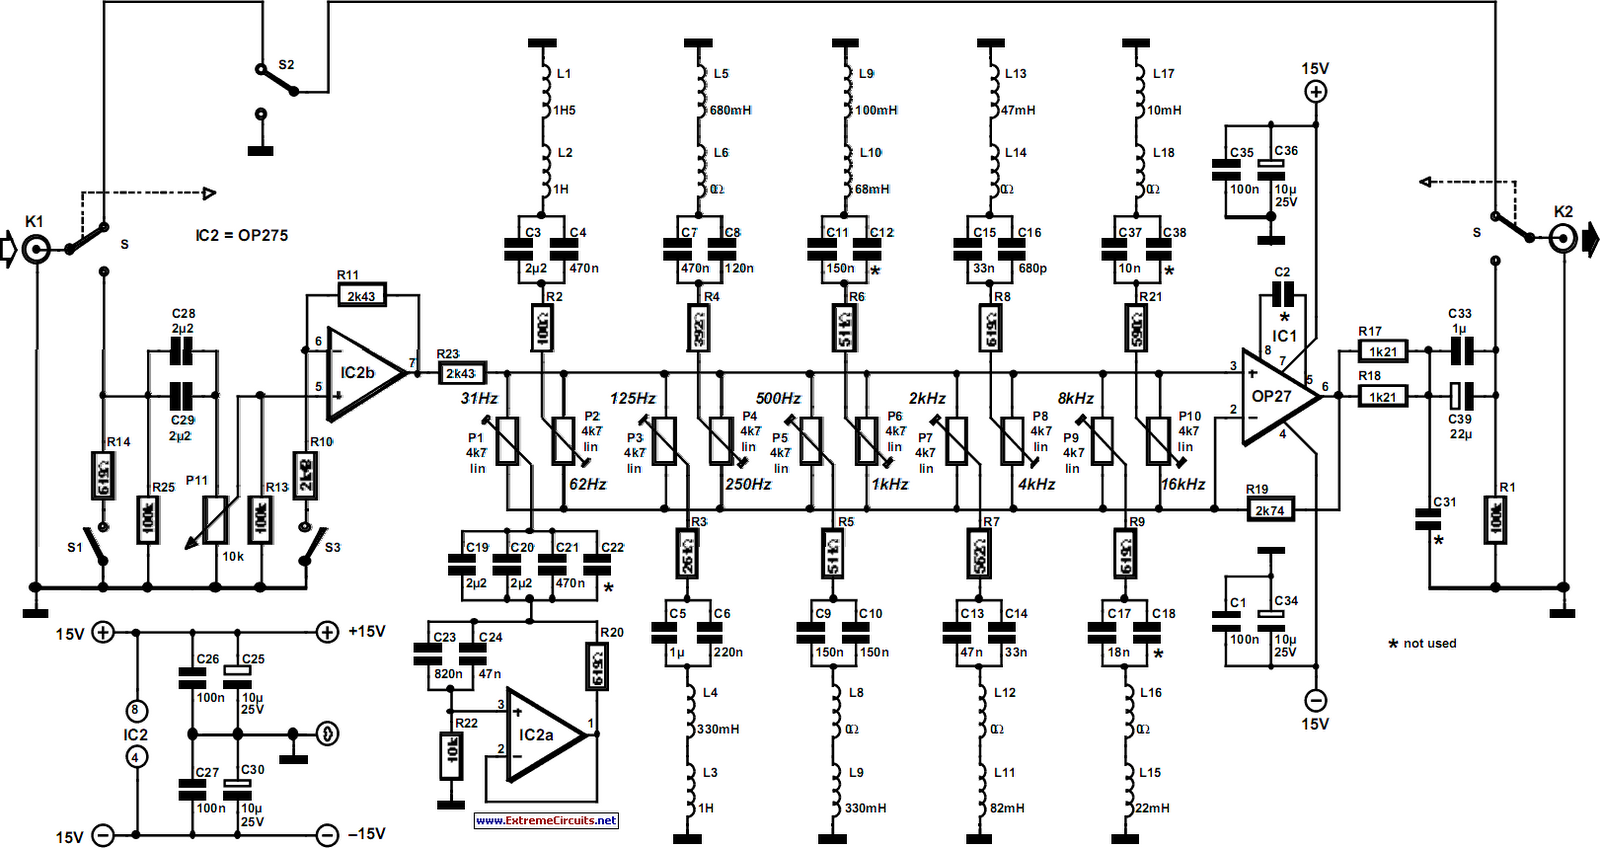 2013 Circuit Wiring Schematic Stereo Diagram On Pioneer Deh P6400 Group Ten Band Equalizer